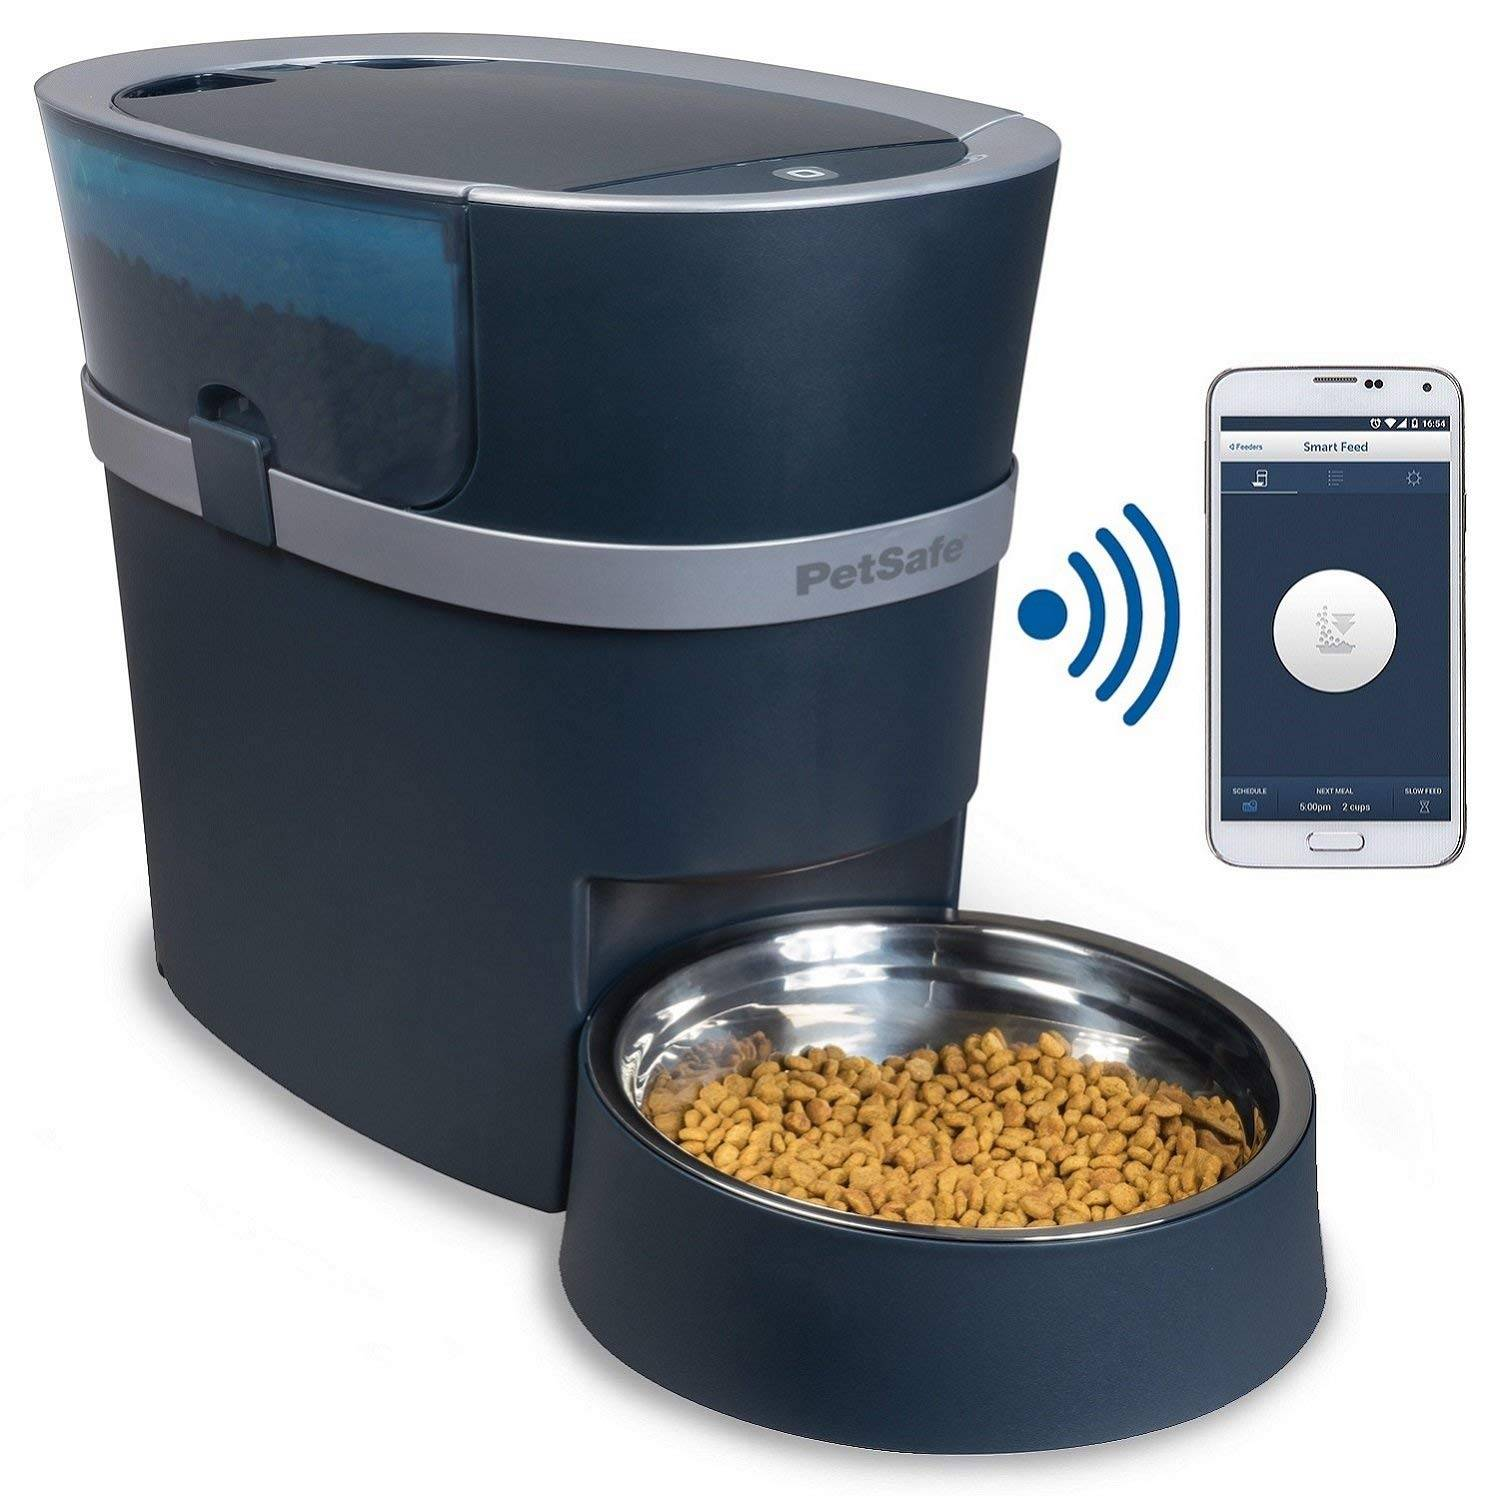 Petsafe Smart Feeder  - PetSafe Smart Feeder - 9 Life-Changing Gadgets All Pet Owners Need to Know About